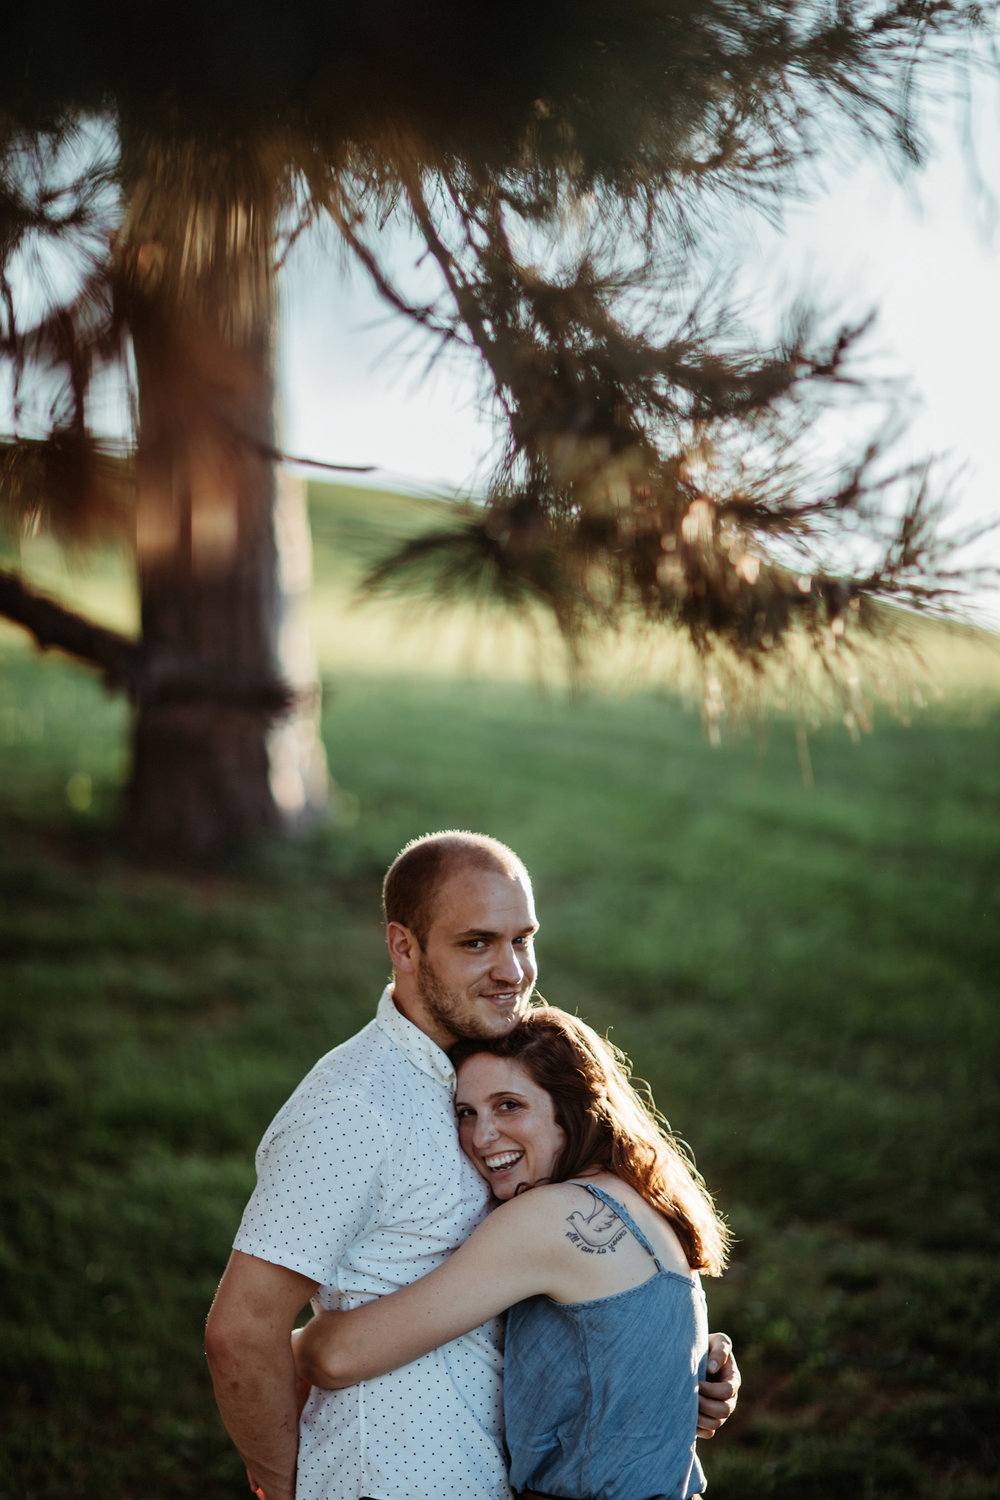 Kansas City_Penn Valley Park_Engagement Session_Kindling Wedding Photography08.JPG